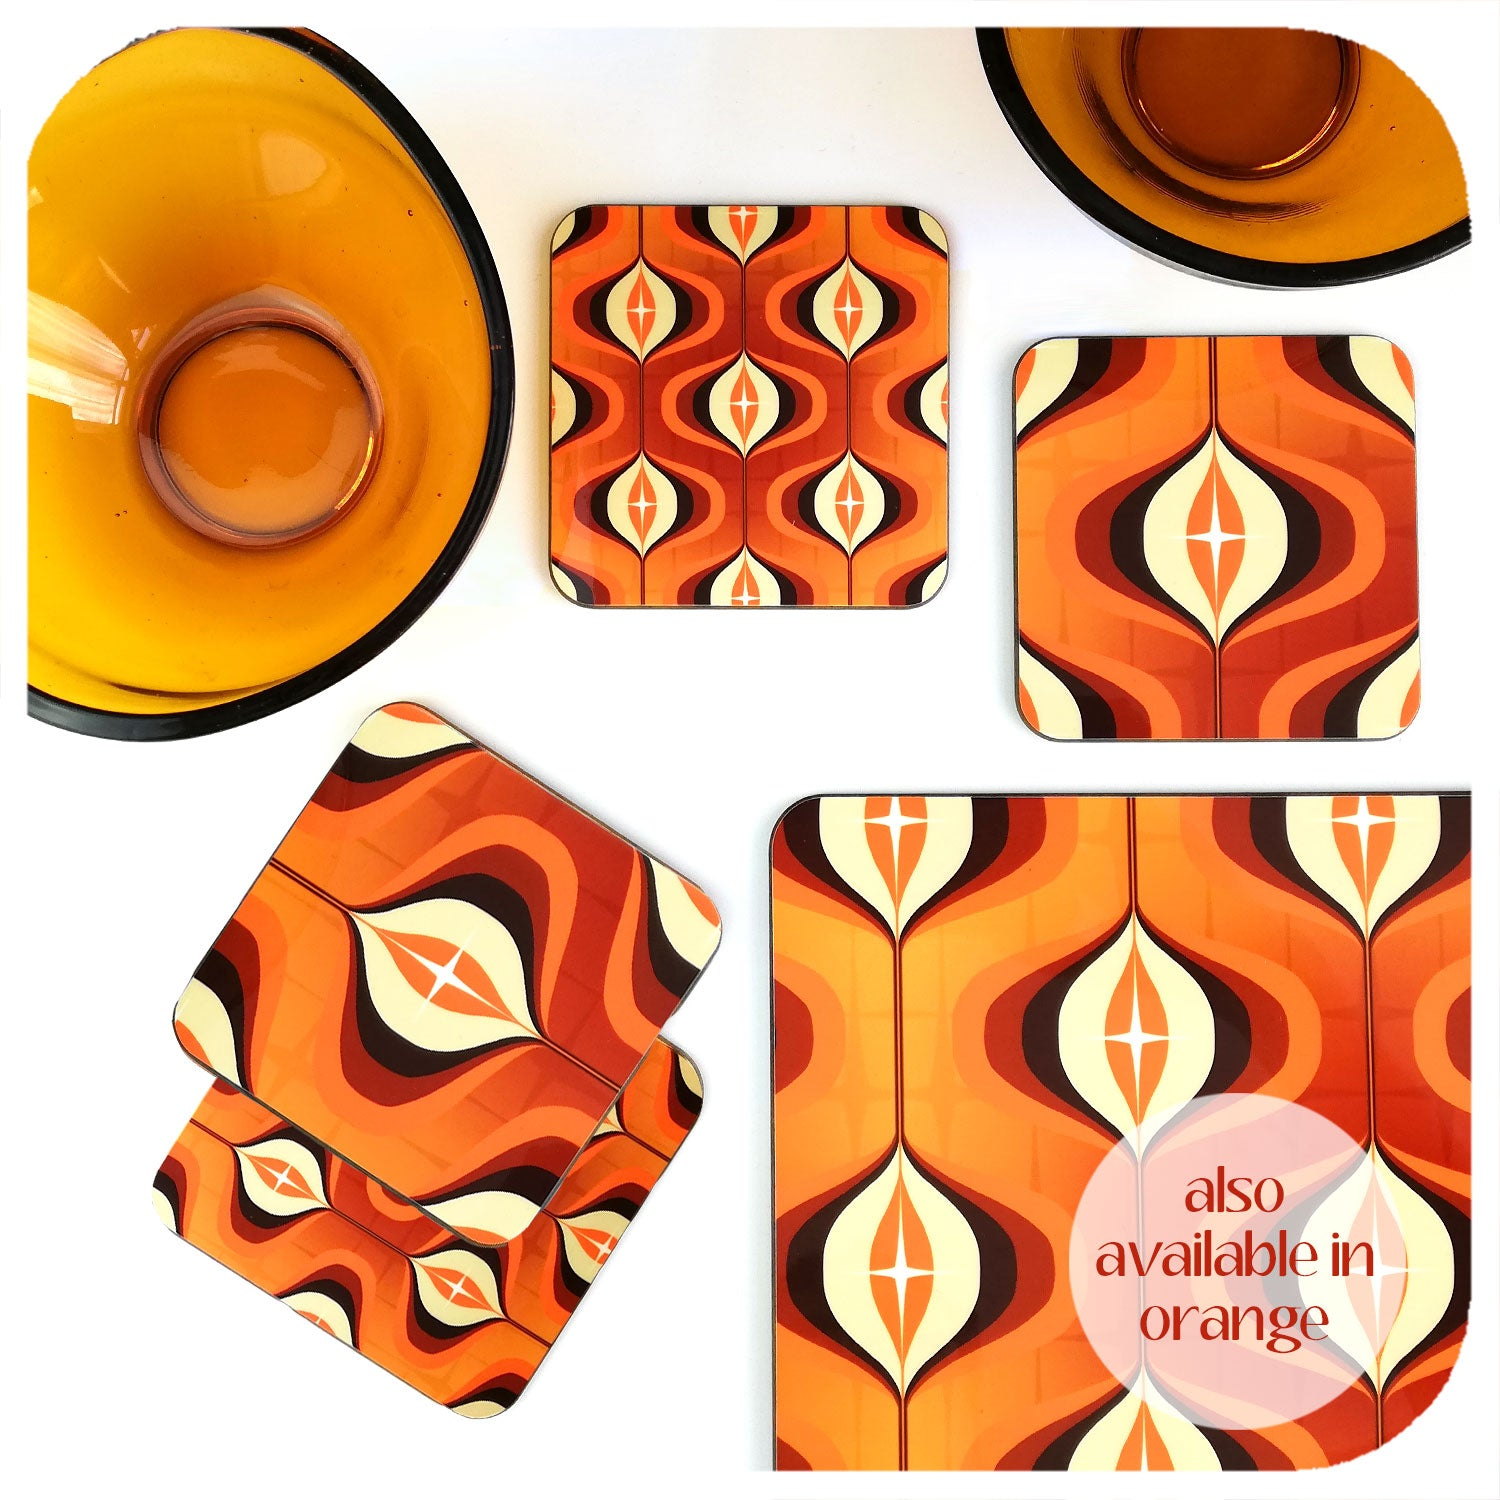 70s Style Op Art Placemat & coasters in Orange, set with vintage tableware | The Inkabilly Emporium